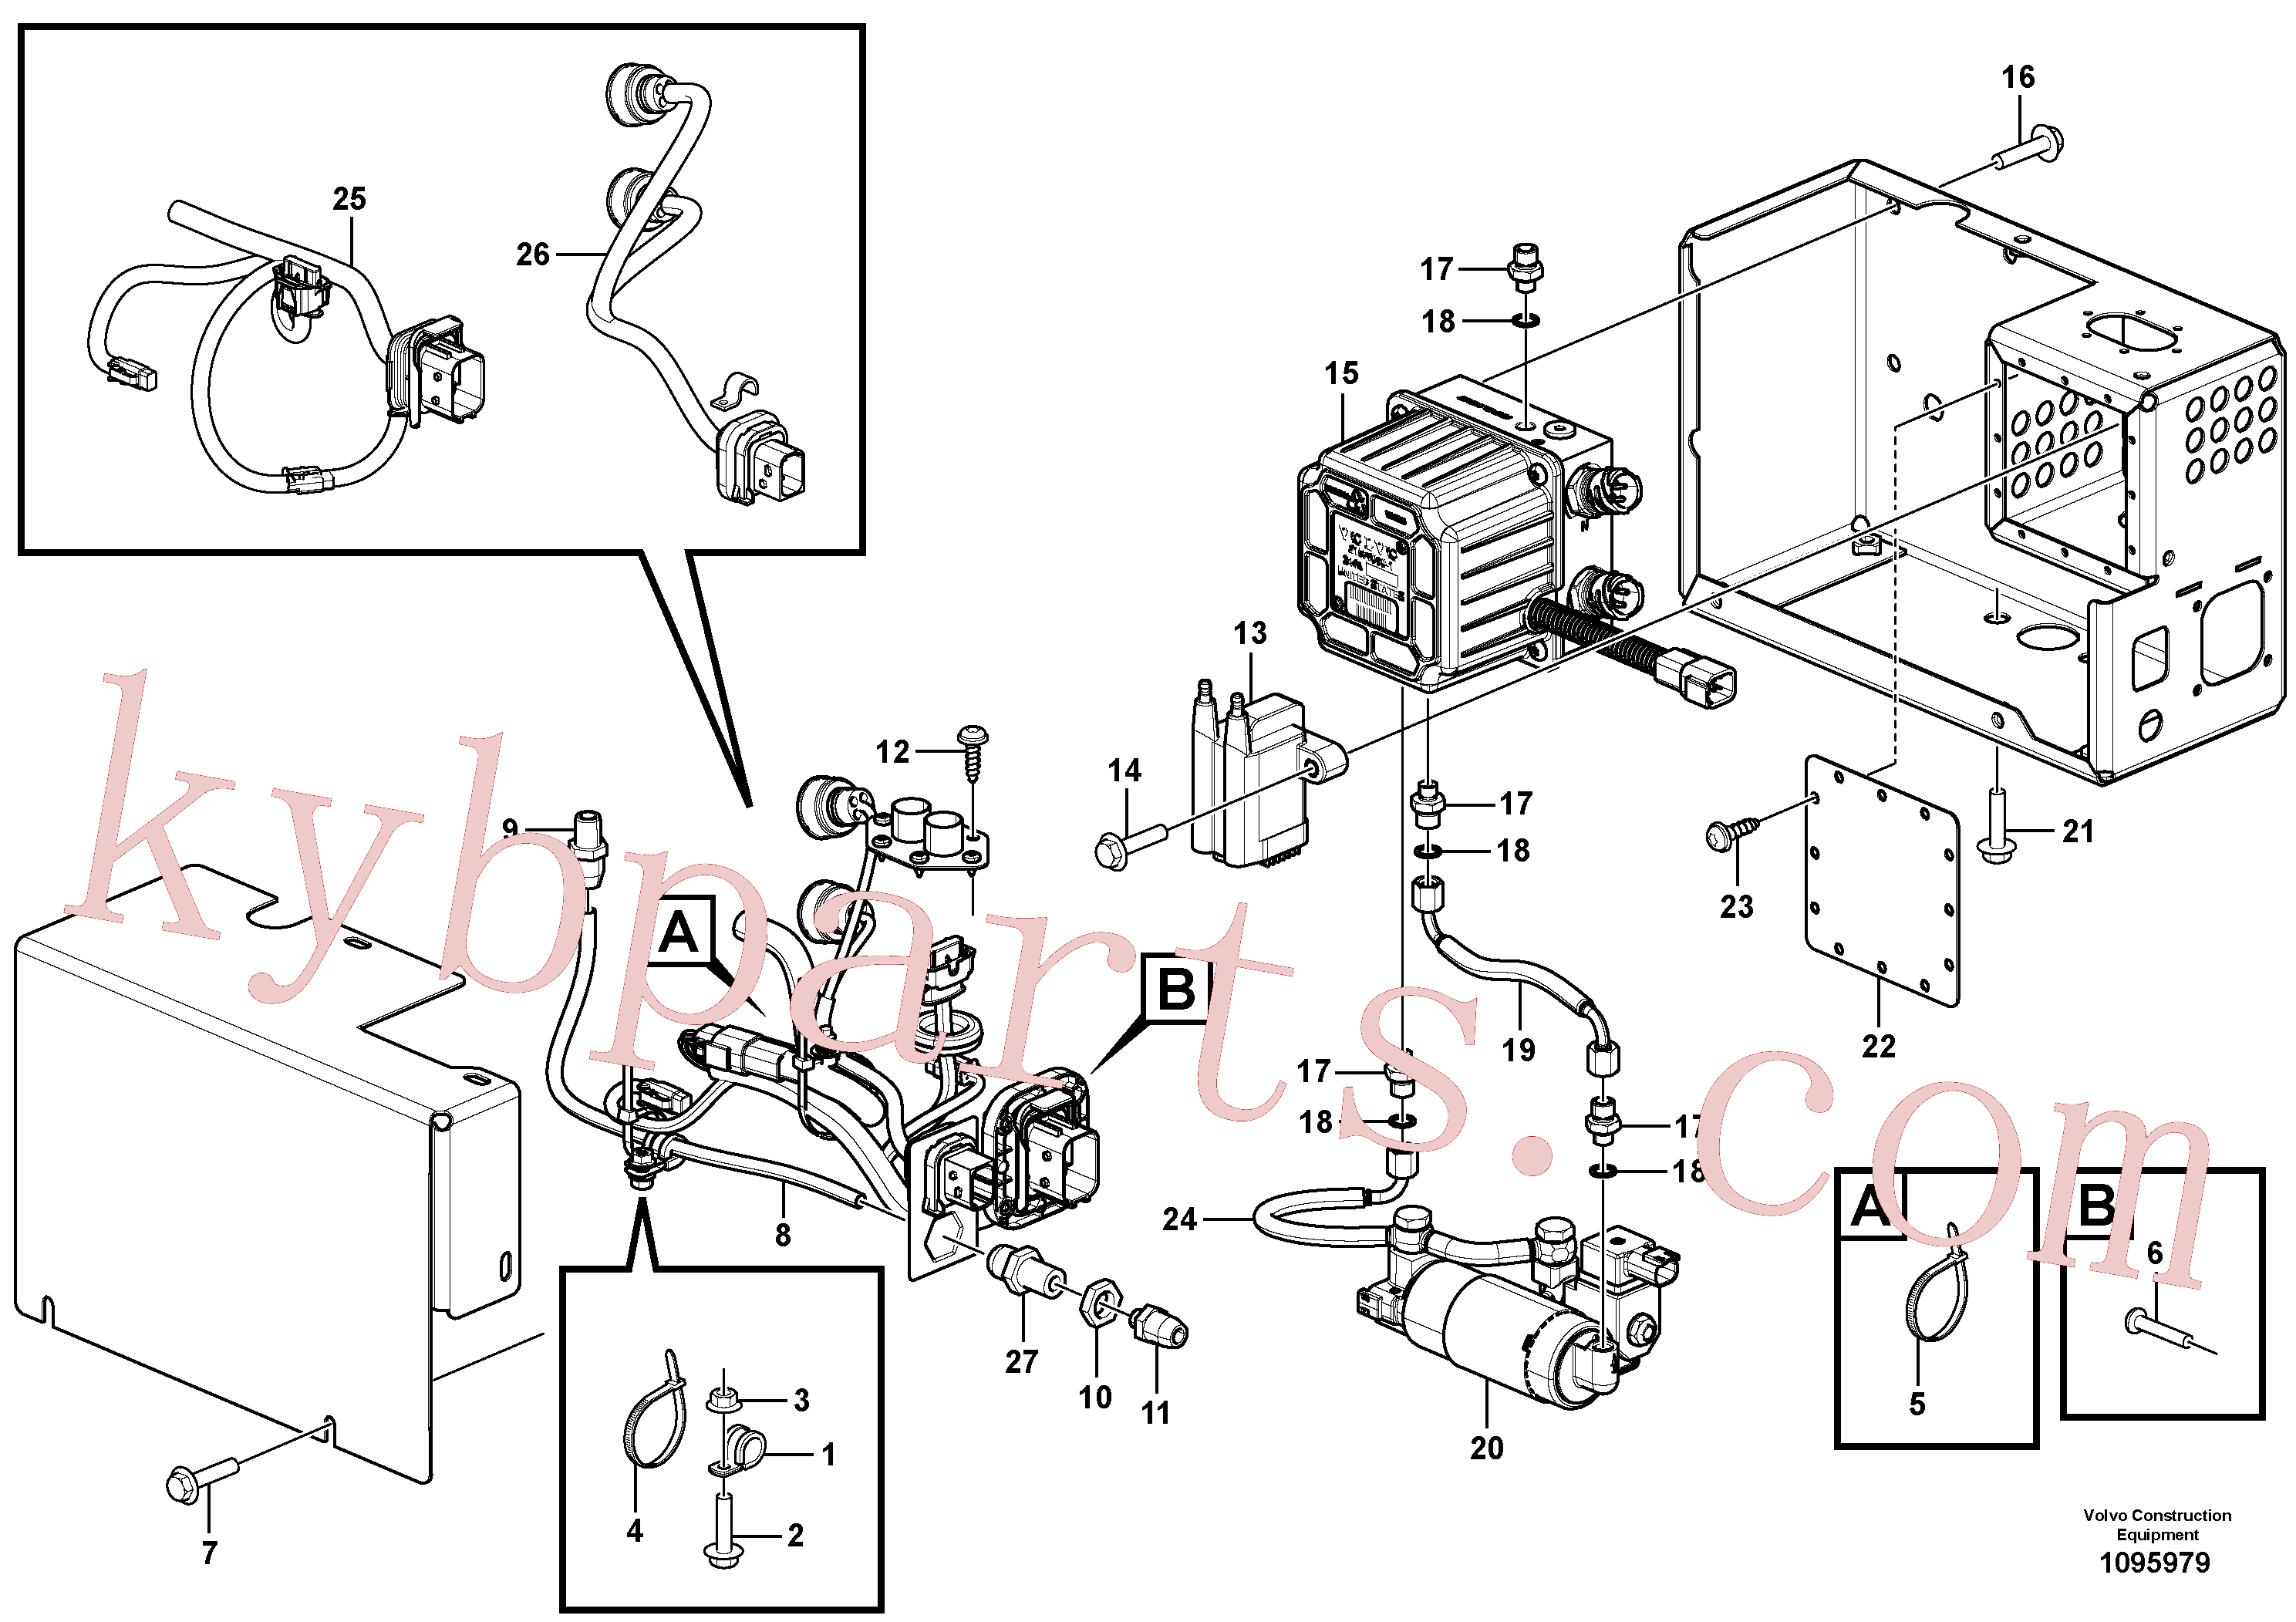 VOE980832 for Volvo Aftertreatment Support Unit(1095979 assembly)